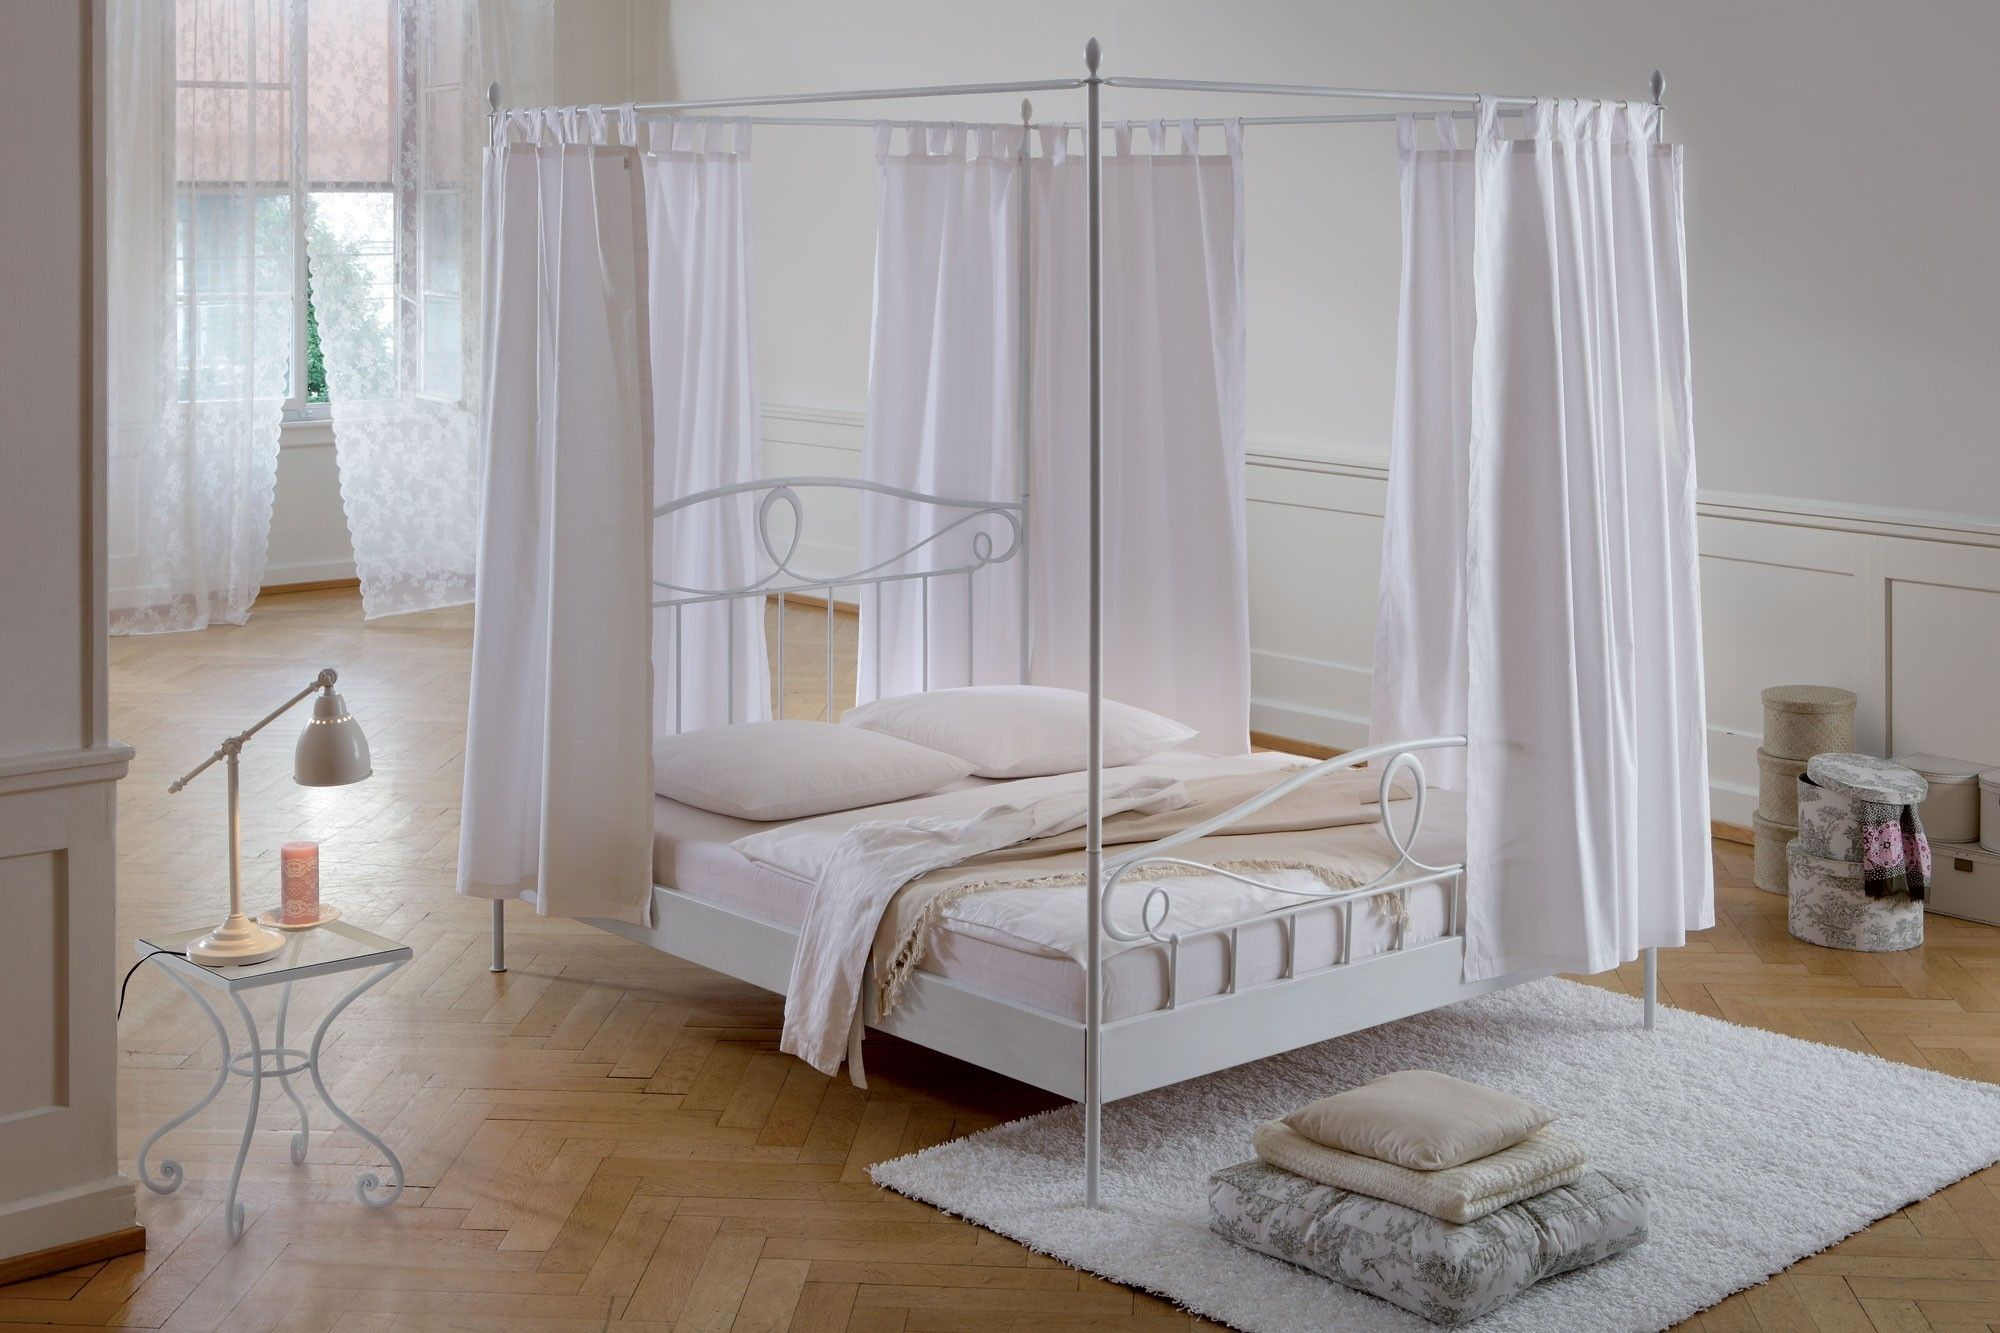 Picture of Remarkable New Canopy Bed Curtains Decorating